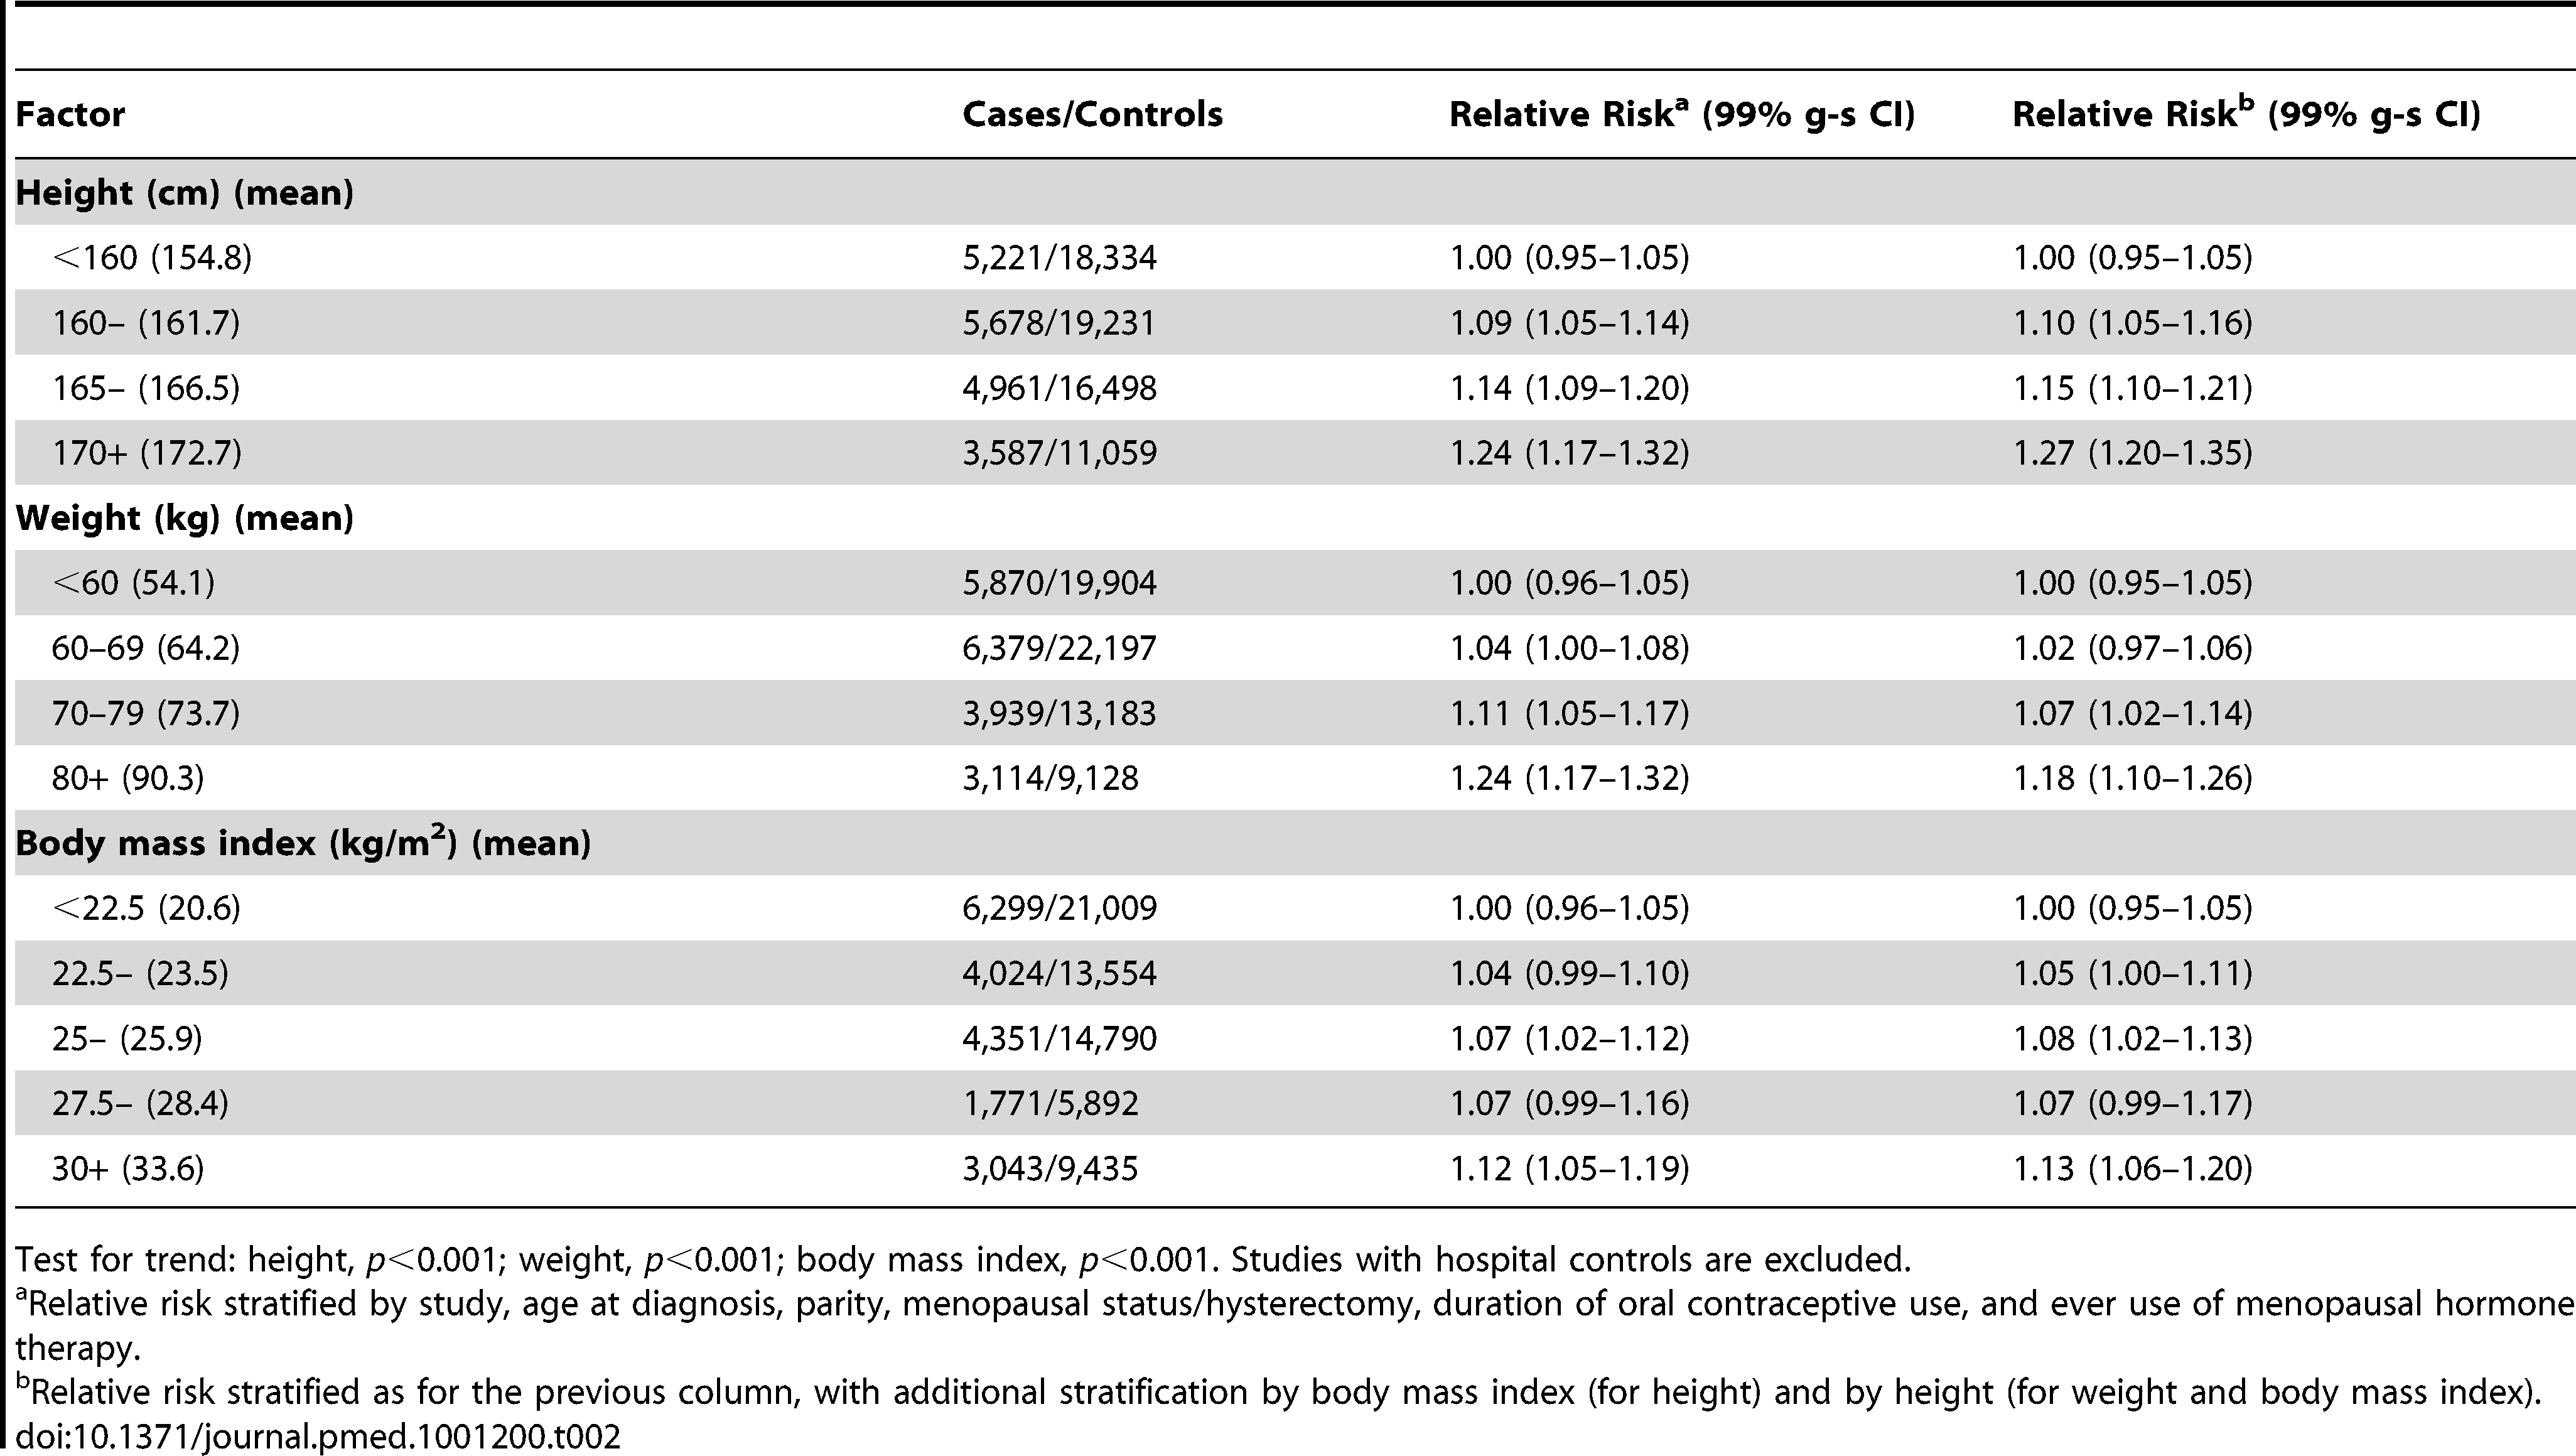 Relative risk of ovarian cancer in relation to height, weight, and body mass index.